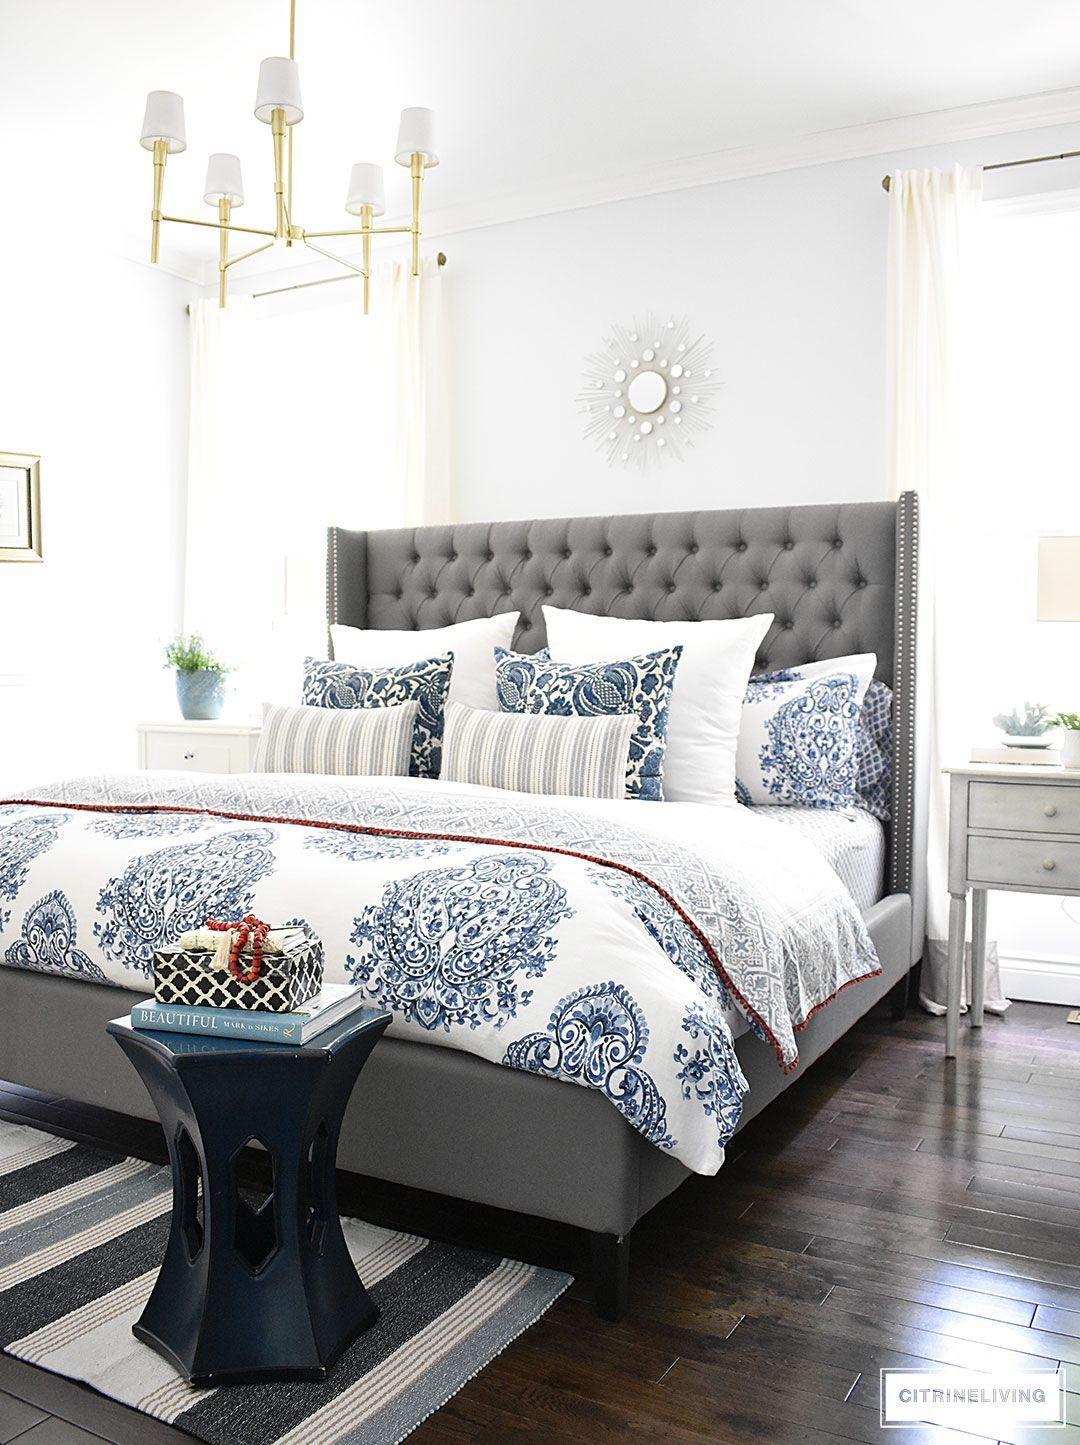 Blue and white Summer decorated bedroom with